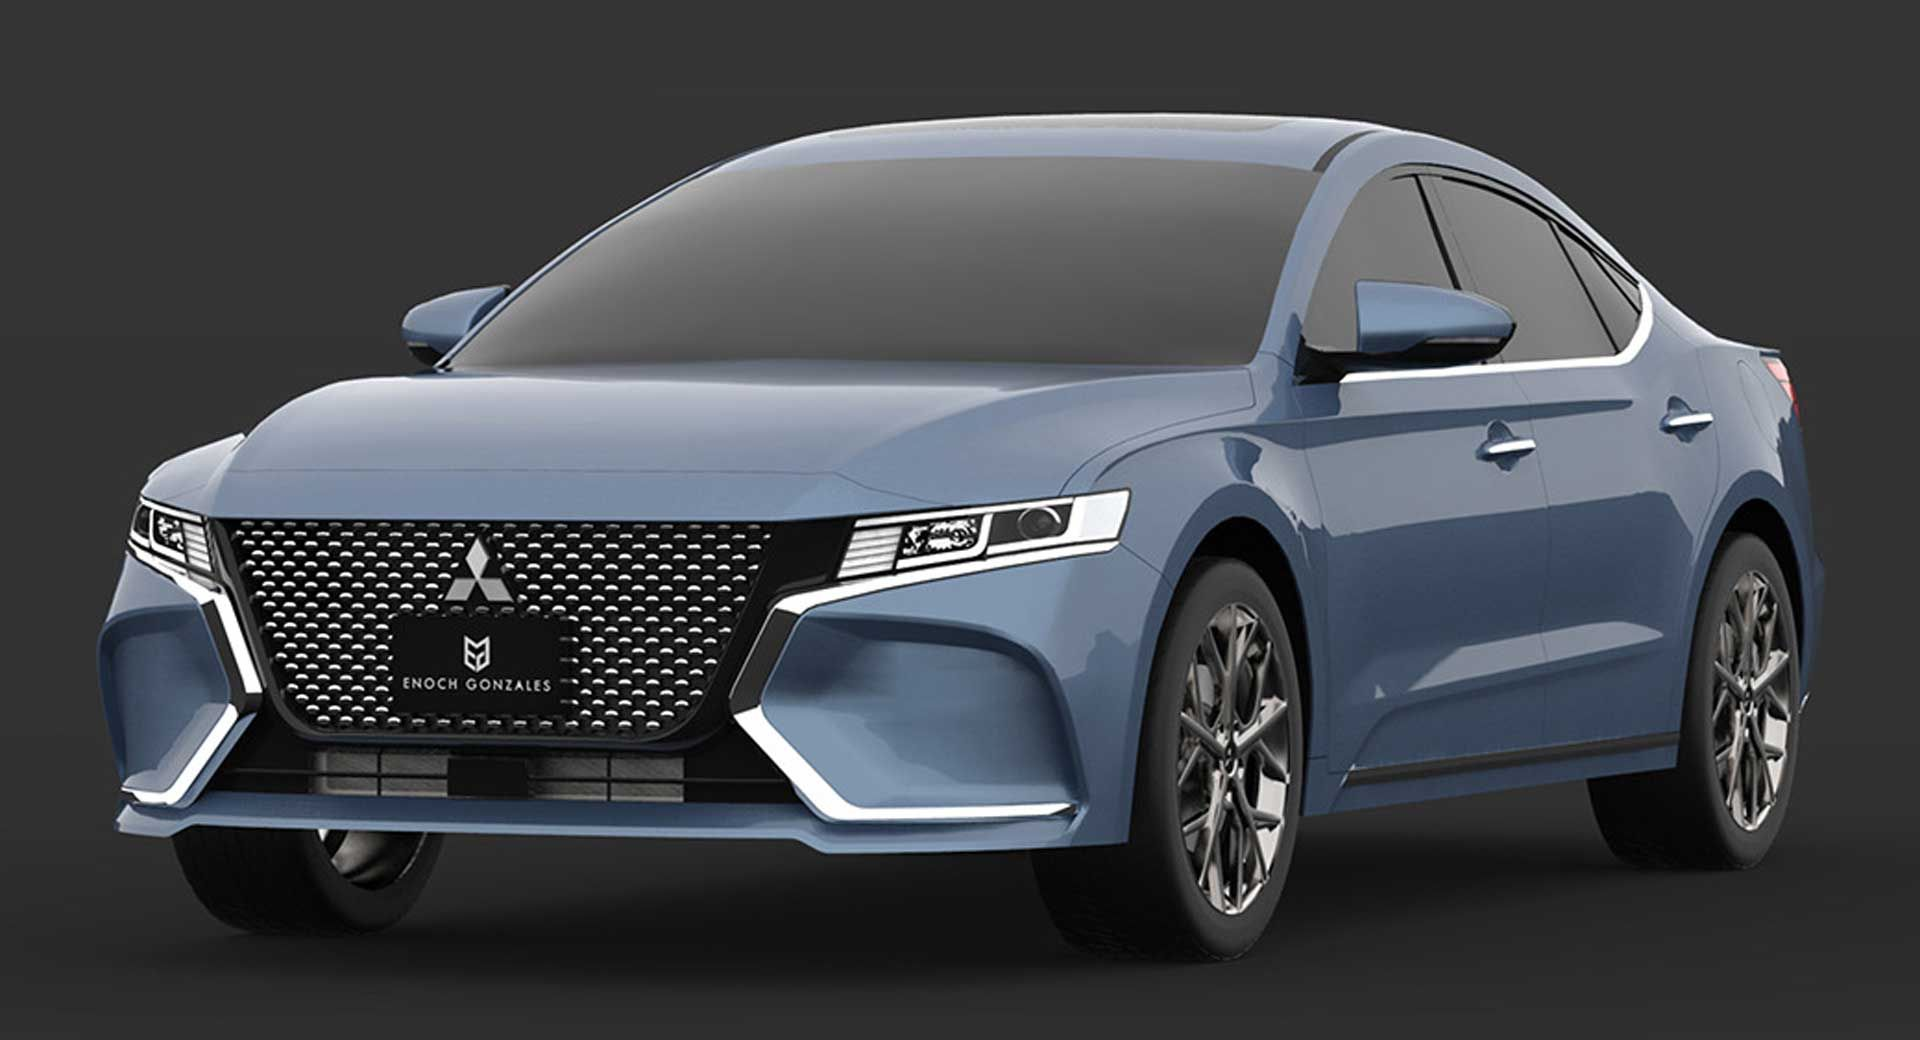 2020 Mitsubishi Gallant Study Envisions The Unlikely Rebirth Of A Mid Size Sedan Carscoops Mitsubishi Galant Mitsubishi Lancer Mitsubishi Cars